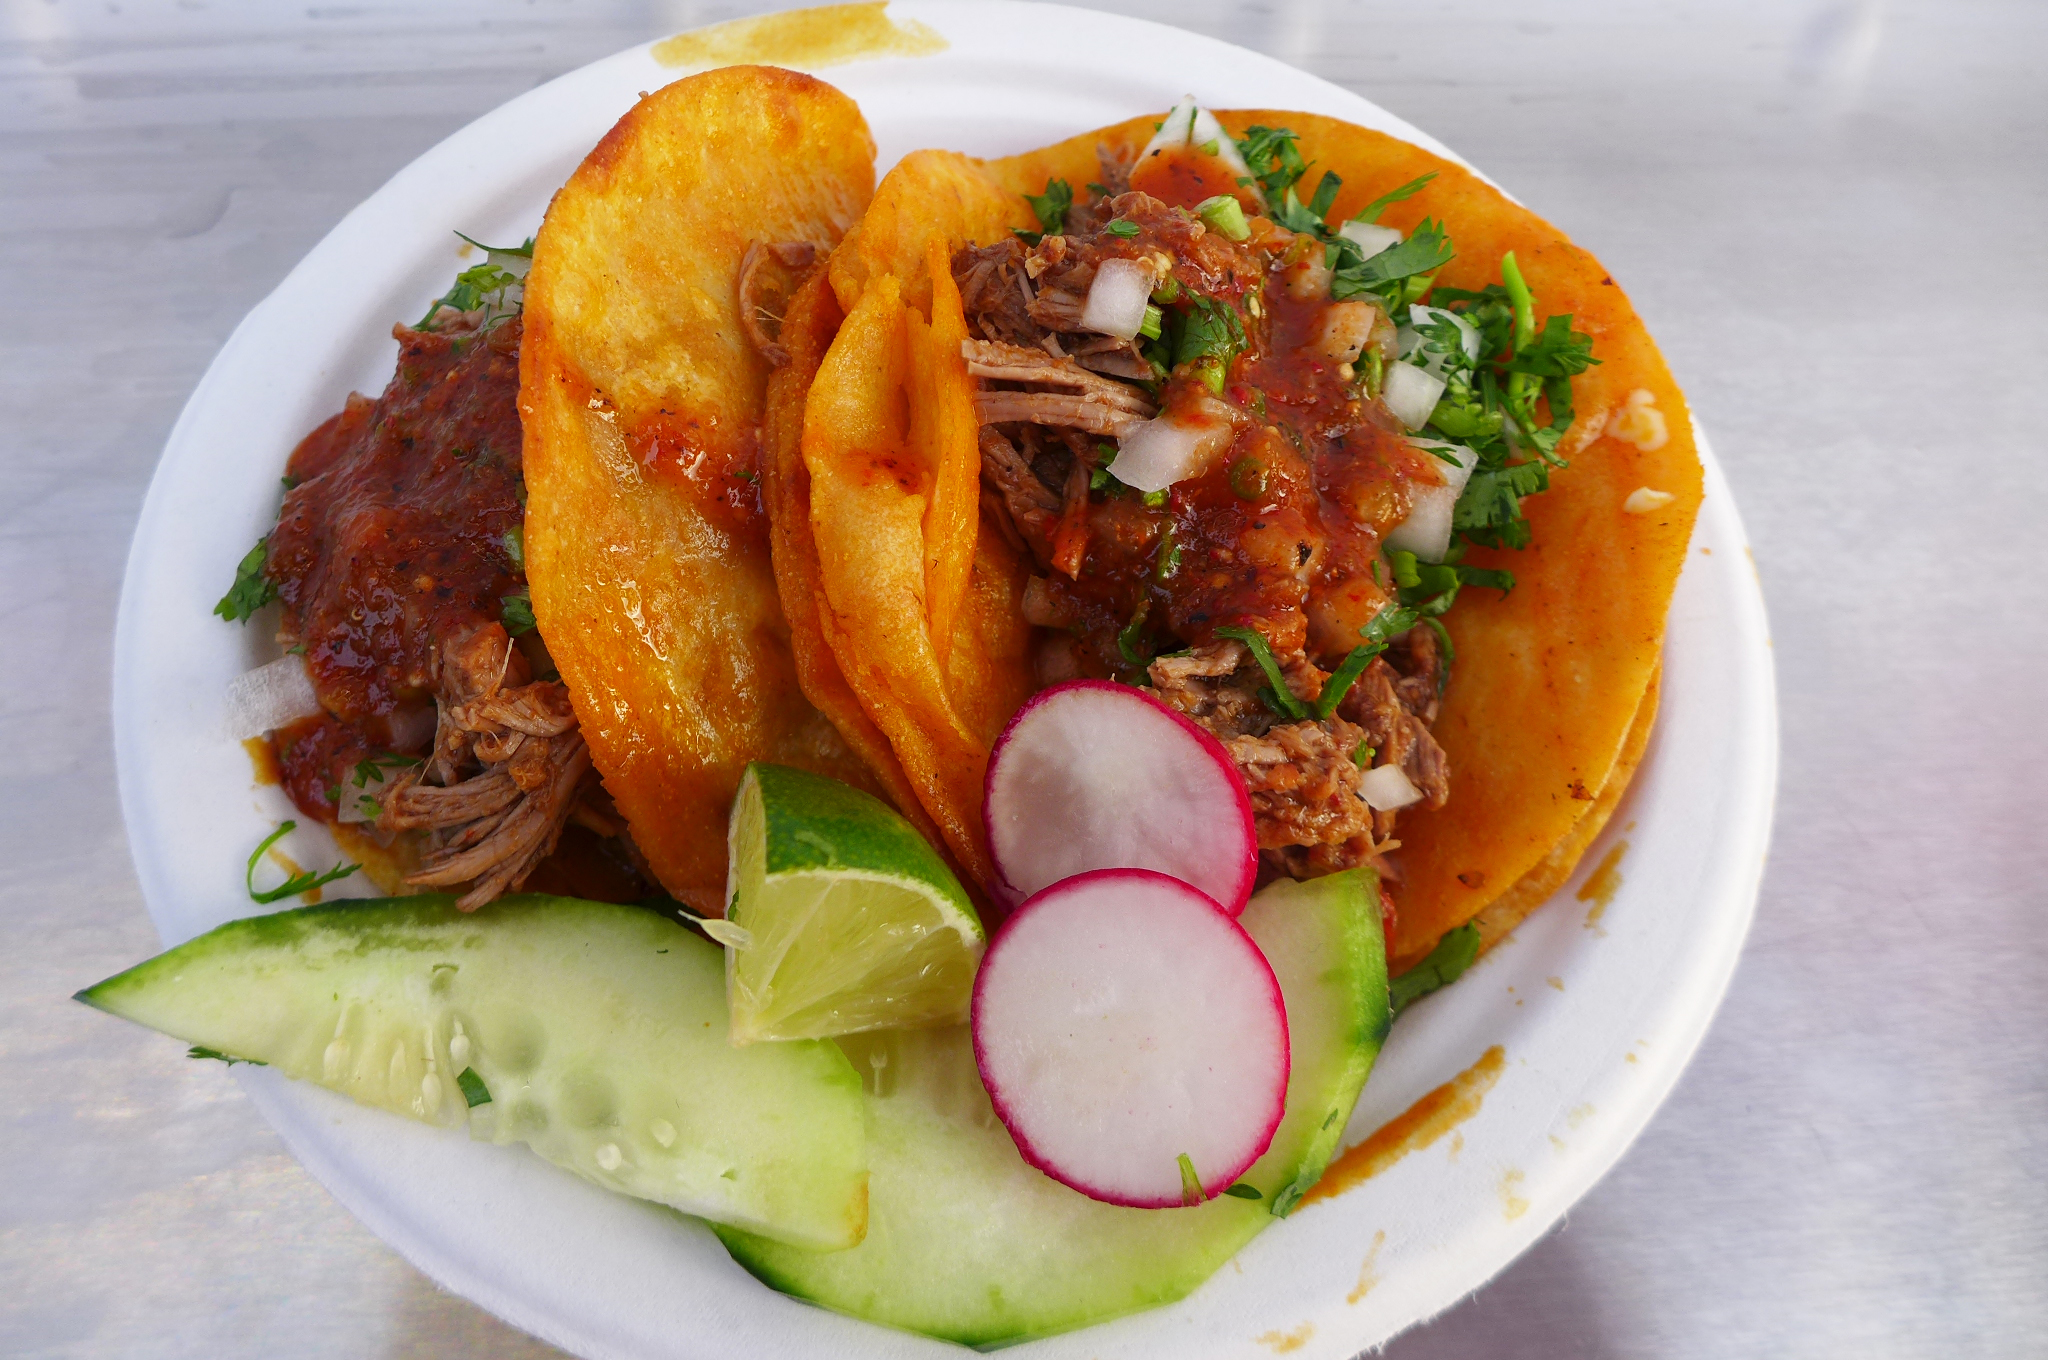 A pair of tacos stuffed with meat, green cilantro, and onions, served with sliced radishes and cucumbers